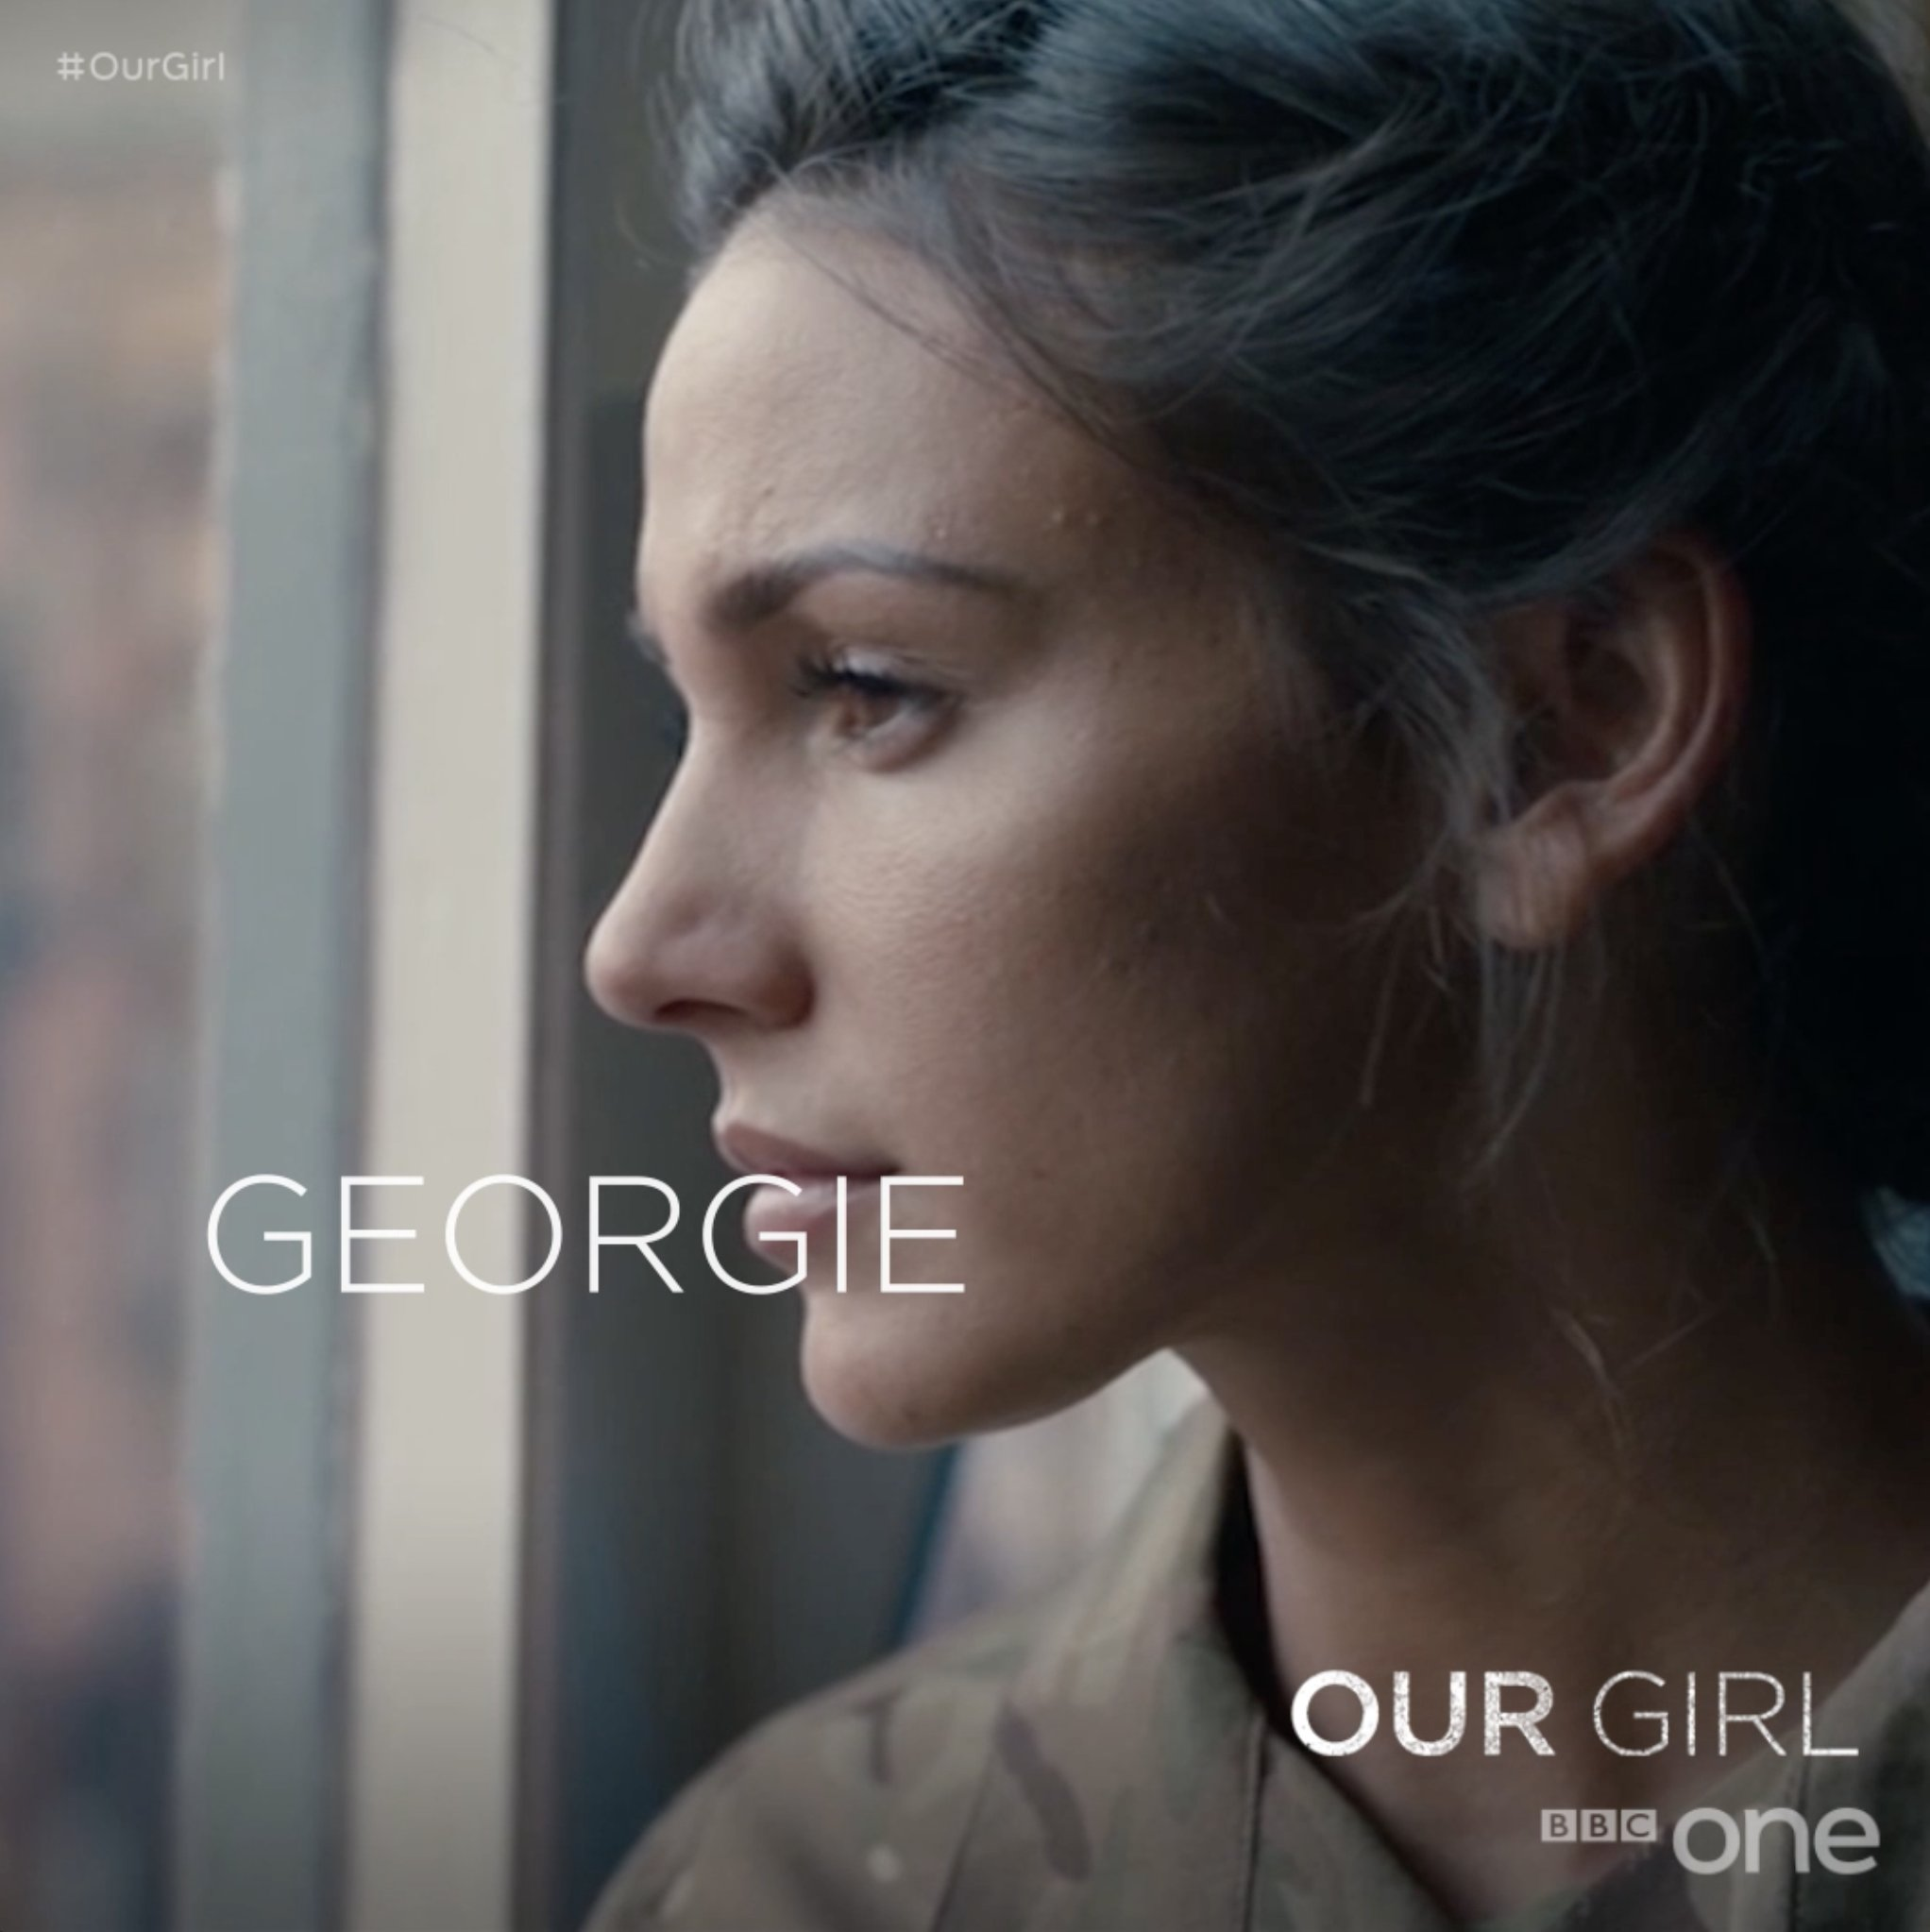 Need an #OurGirl refresher? �� You're welcome. https://t.co/4AAu0ayoYG